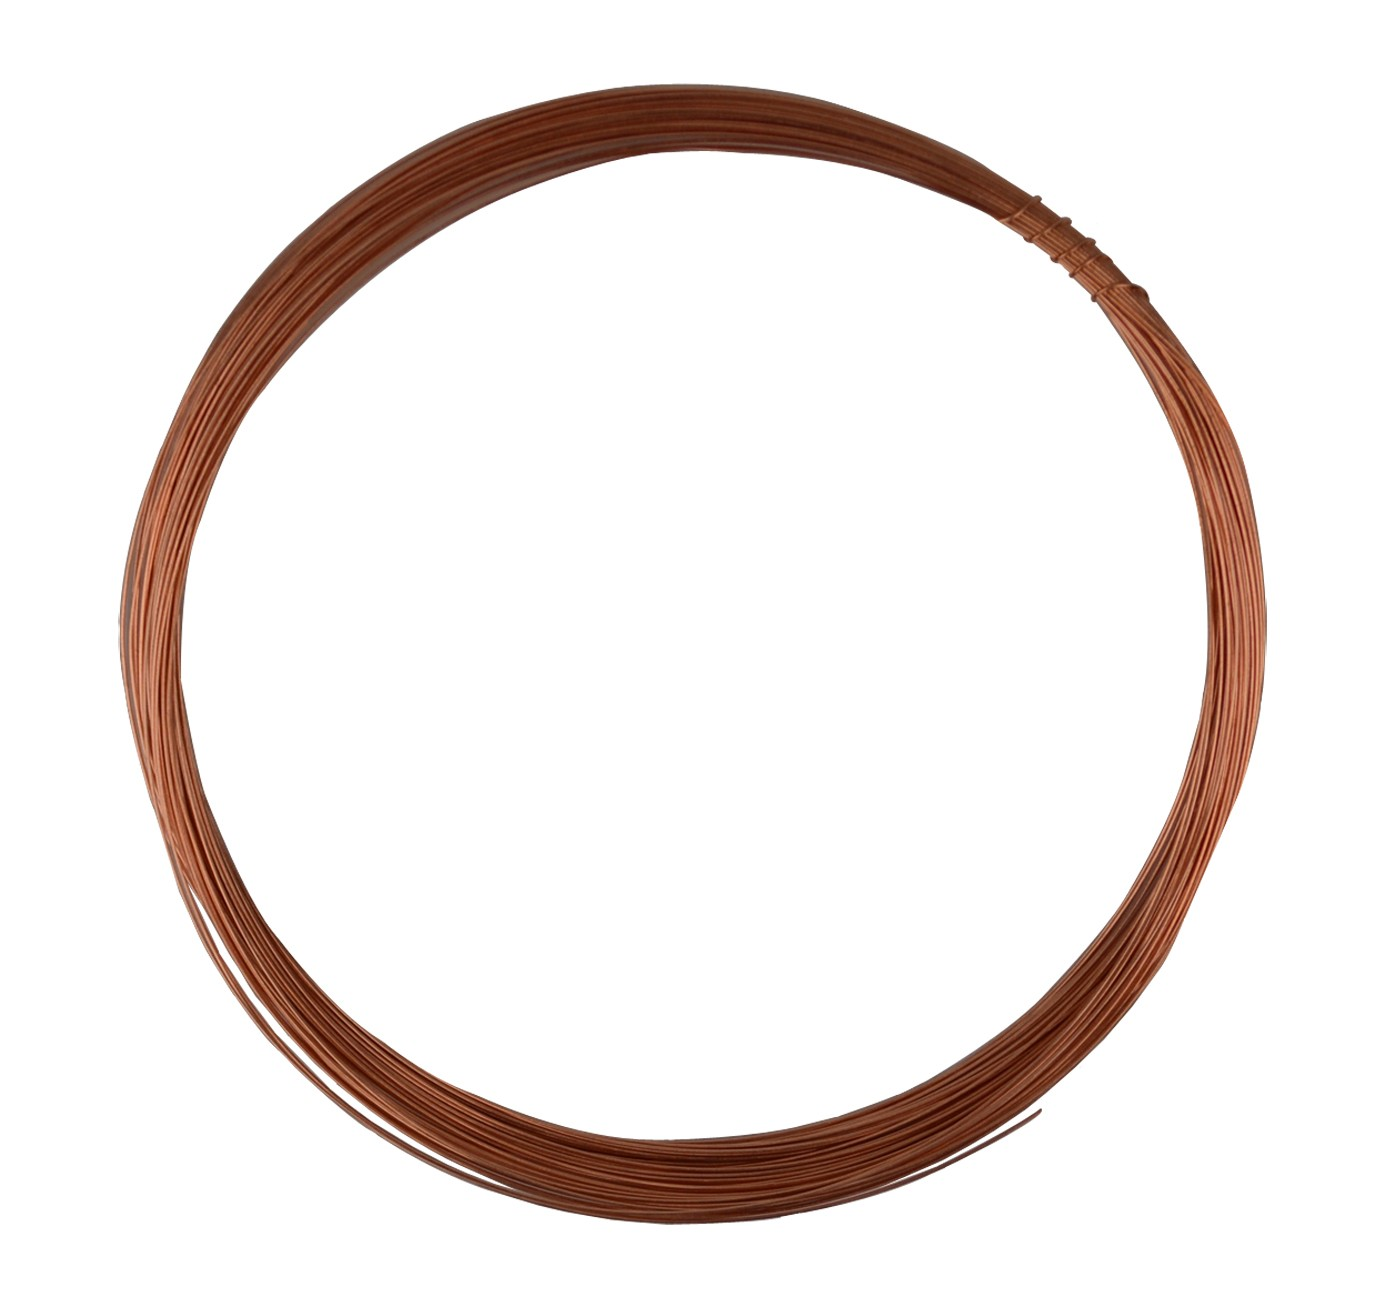 26 Gauge Wire >> 50 Round Dead Soft Copper Wire 26 Gauge